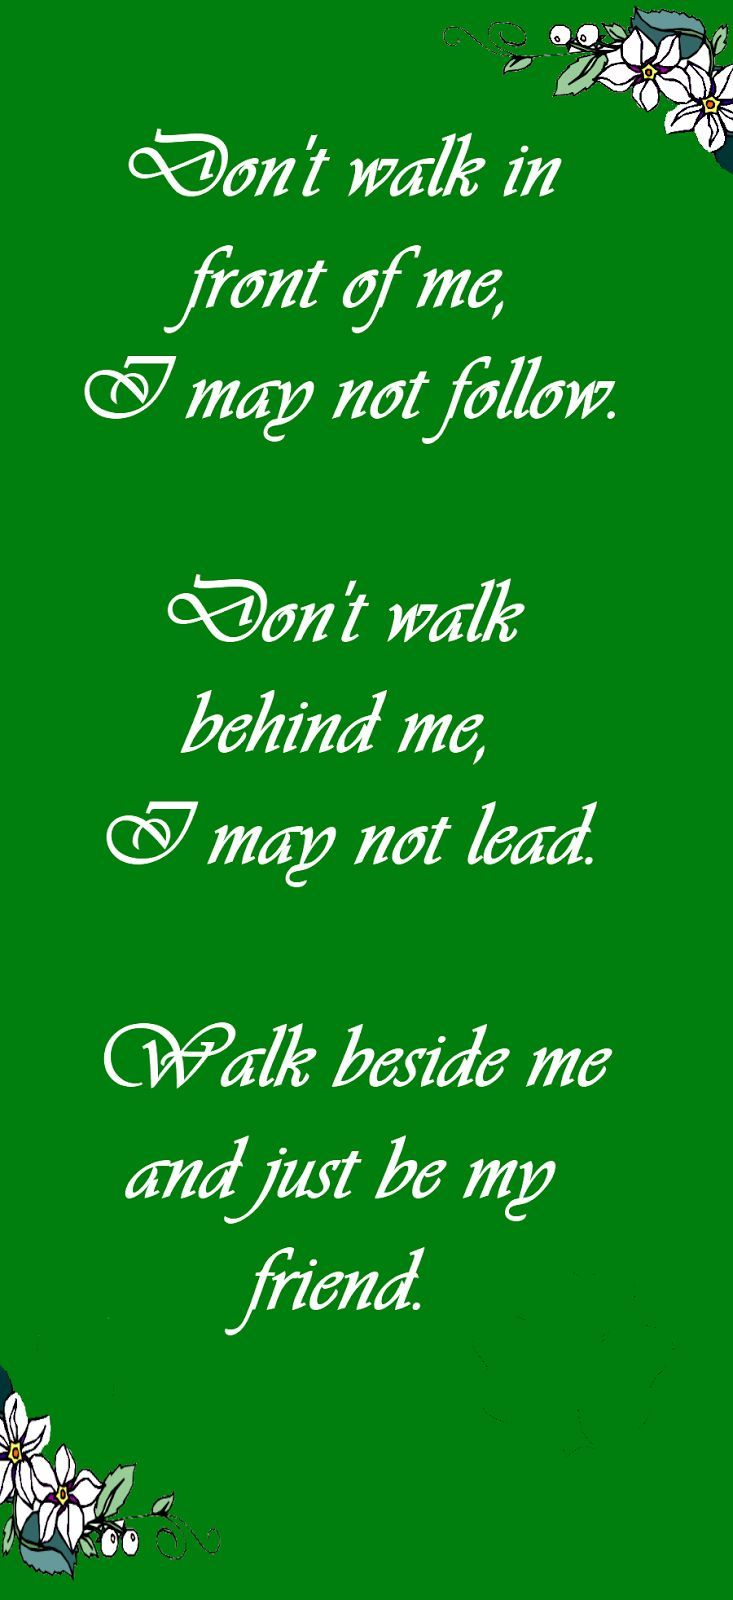 Google Quotes About Friendship Irish Images  Google Search  Irish At Heart  Pinterest